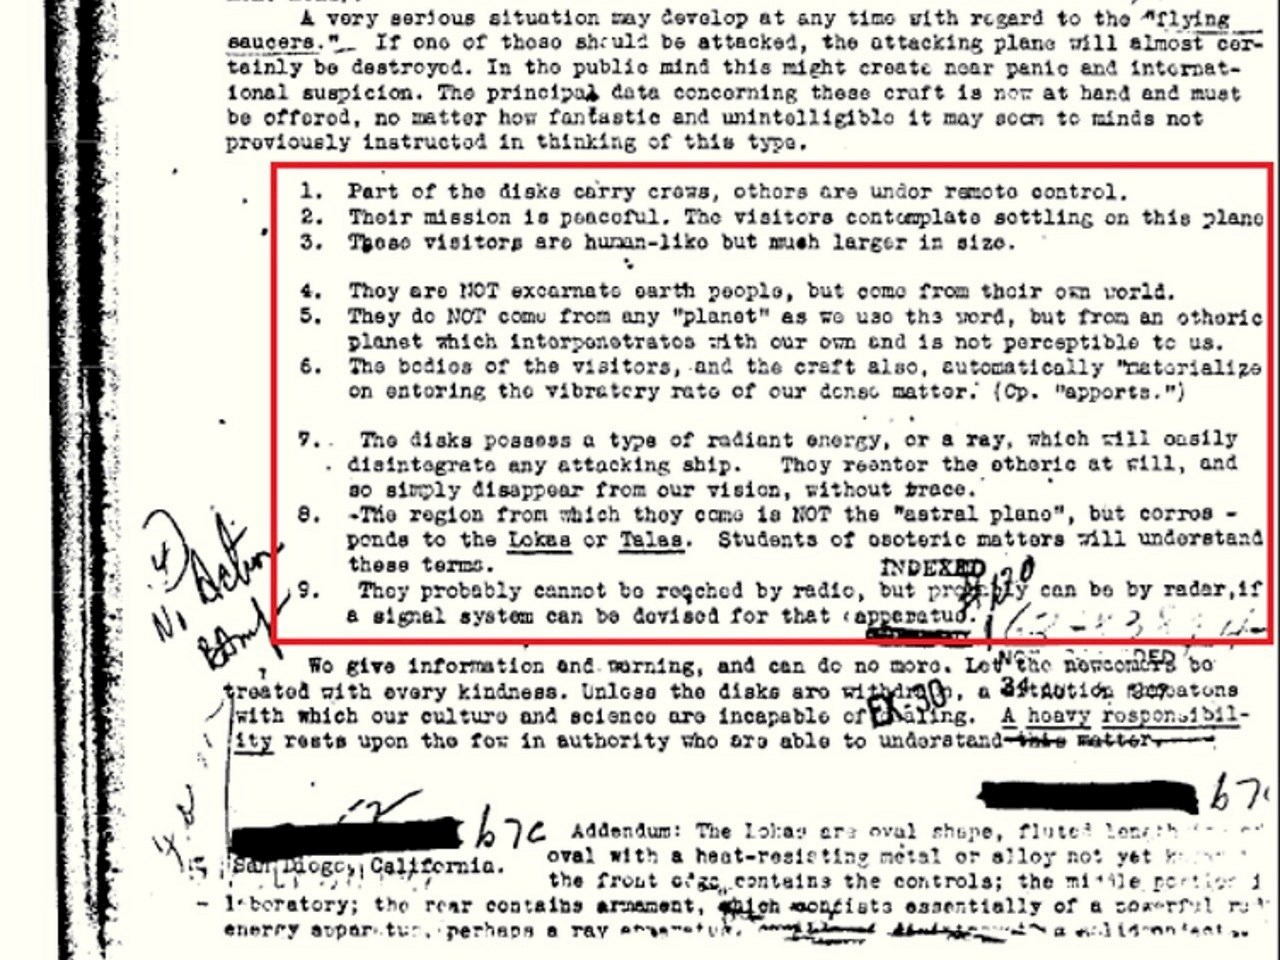 Declassified document from the FBI vault